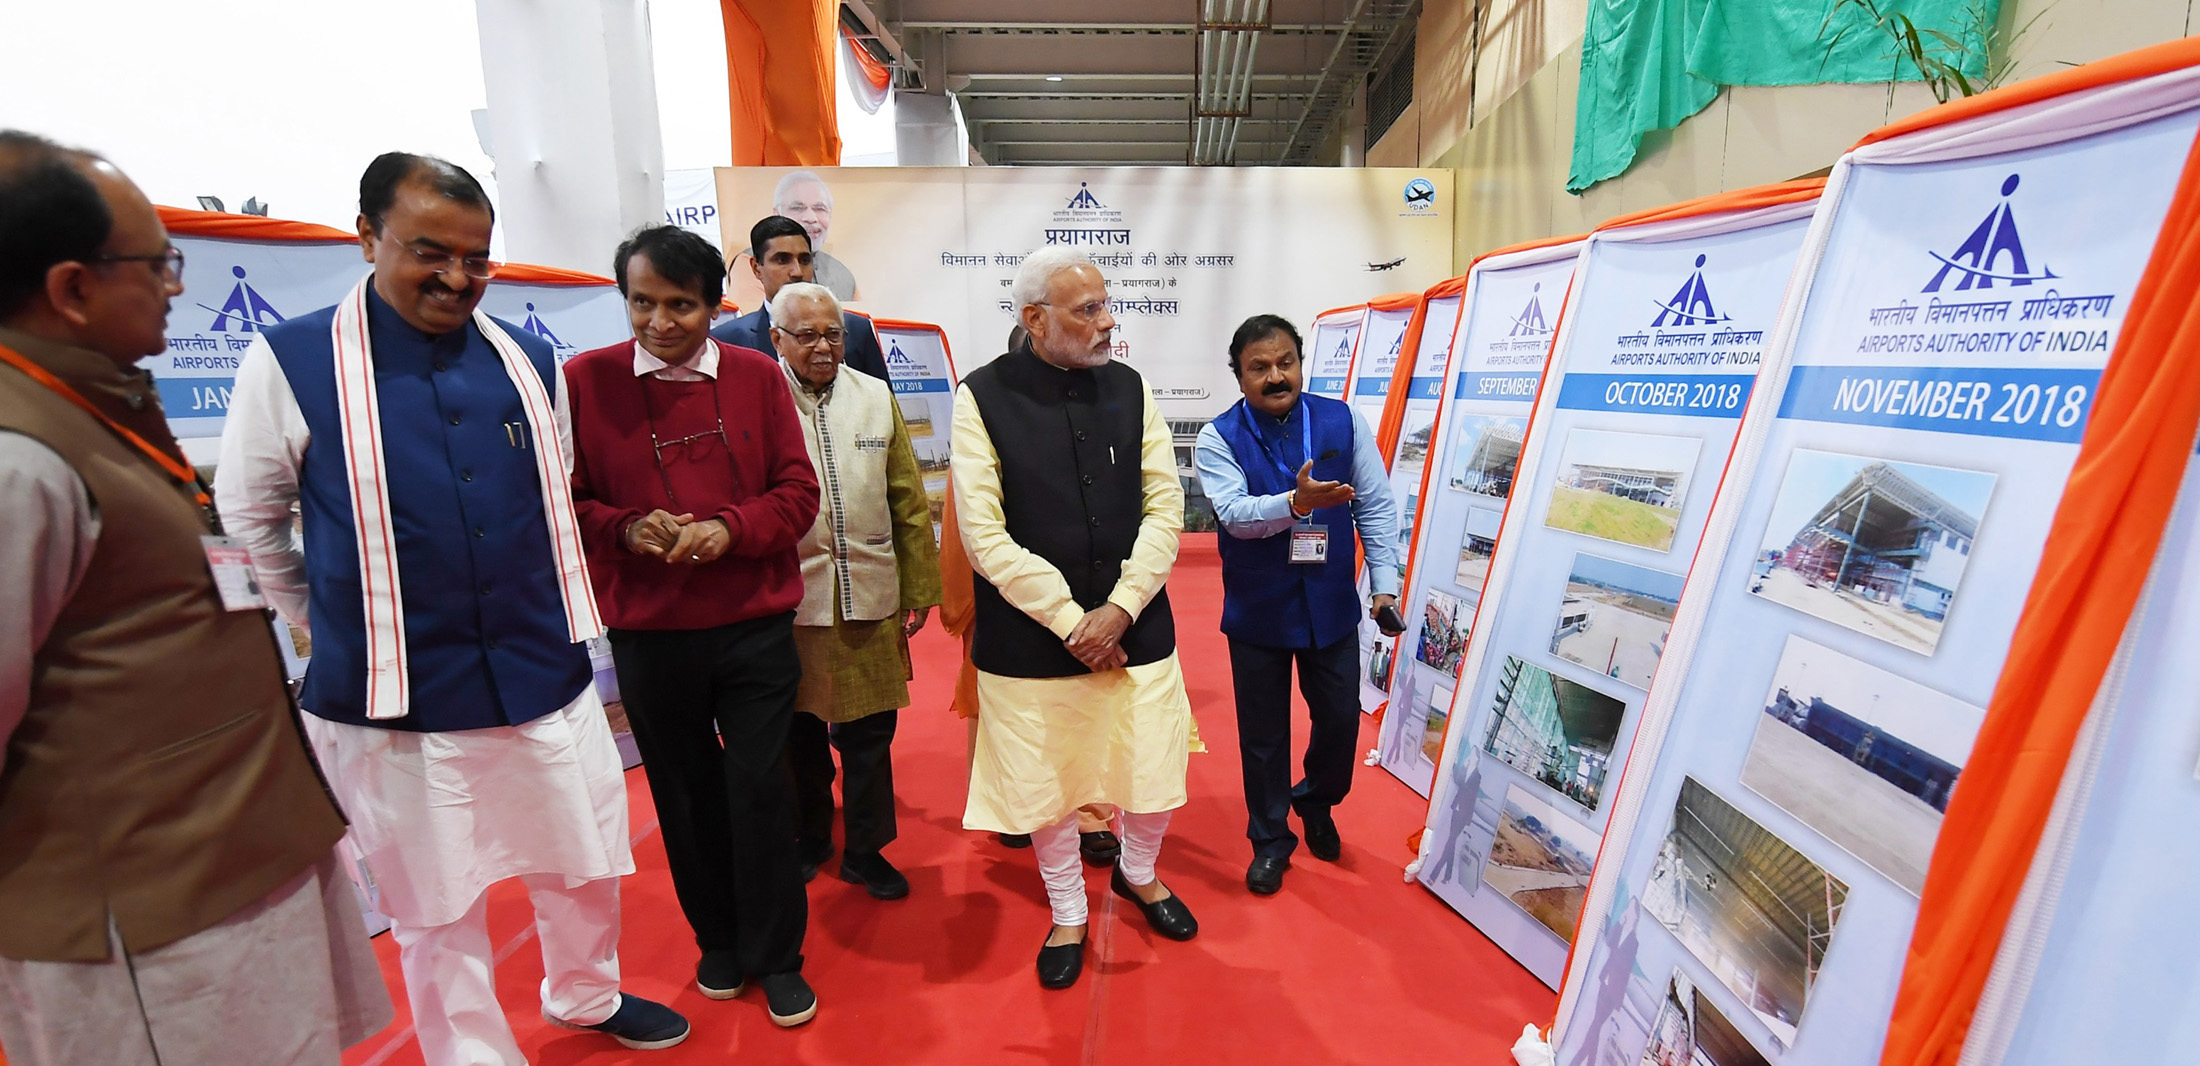 Prime Minister Narendra Modi inspecting preparations at the inauguration of a state-of-the-art Command and Control Centre for the Kumbh Mela, at Prayagraj, in Uttar Pradesh. Photo courtesy: PMO